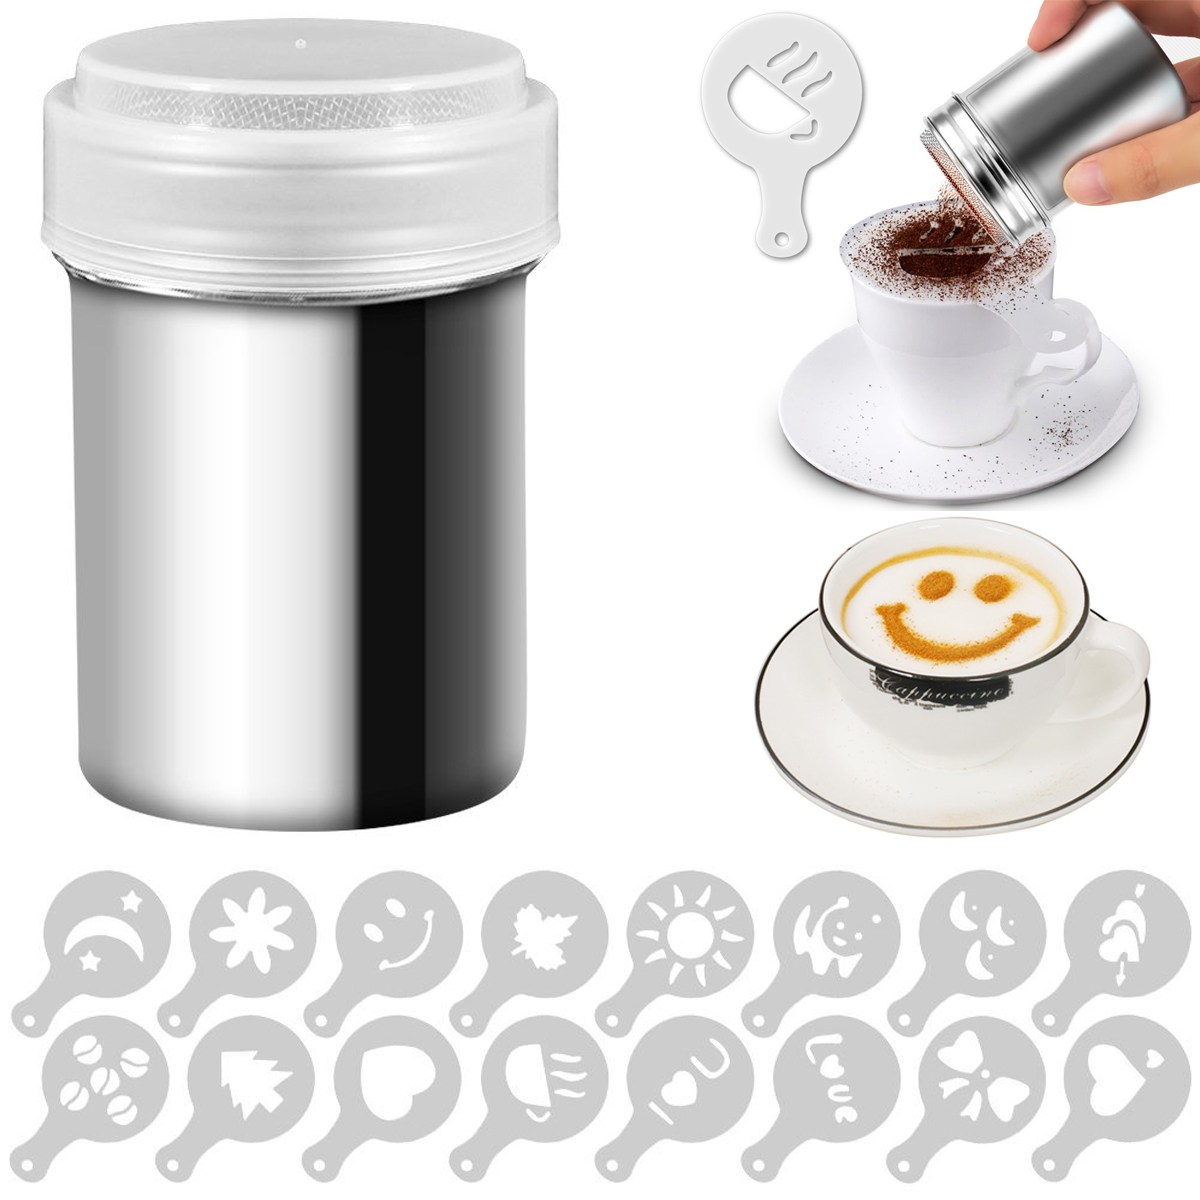 Cappuccino Mold Fancy Coffee Printing Model Foam Spray Cake Stencils Powdered Sugar Chocolate​ Cocoa Coffee Printing AssemblyD40